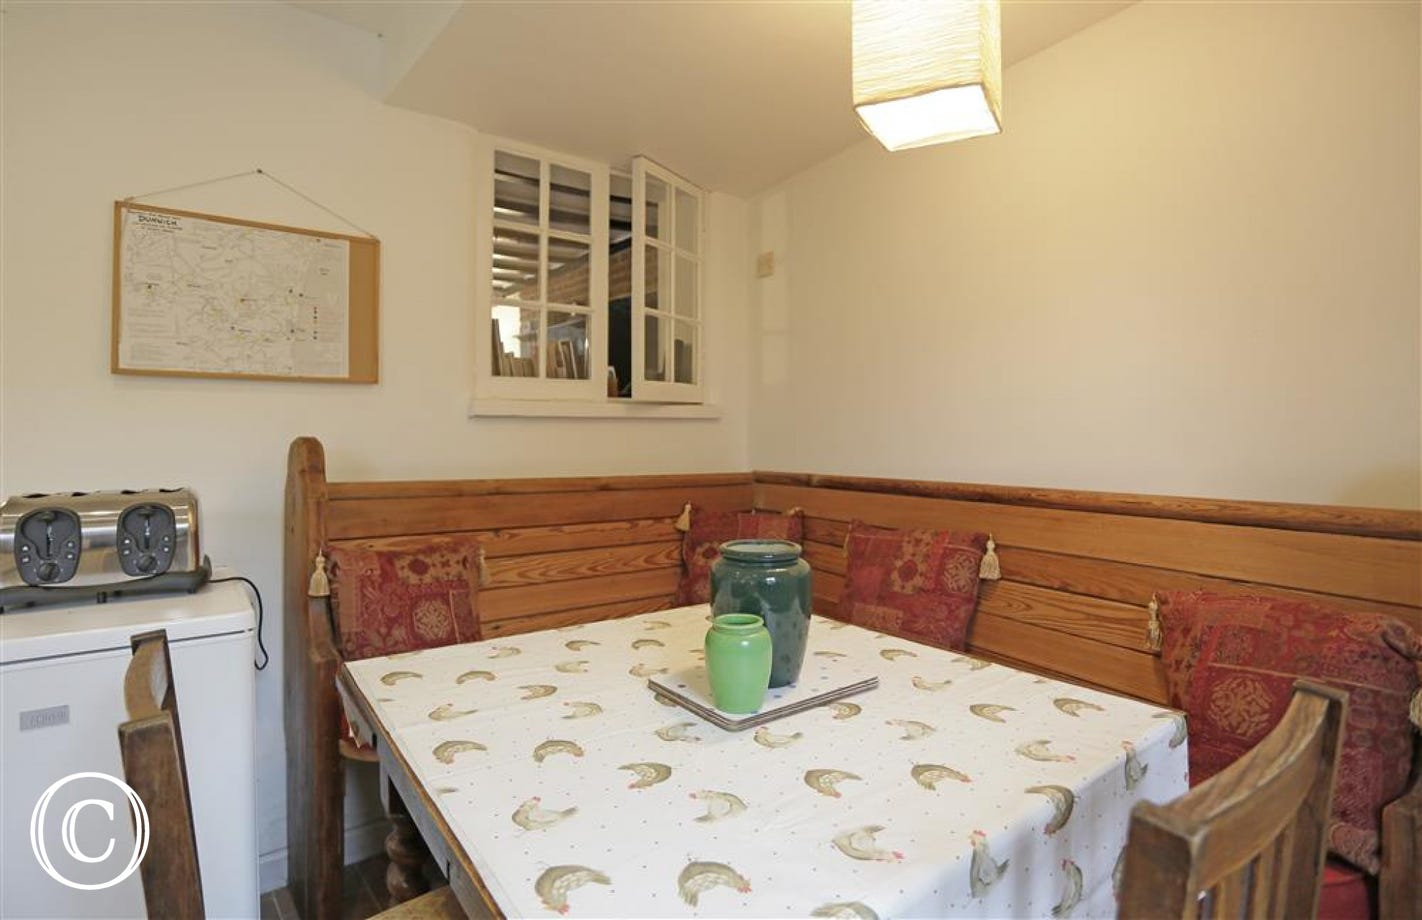 The dining area of the kitchen offers space for families and friends to sit together during meal times.